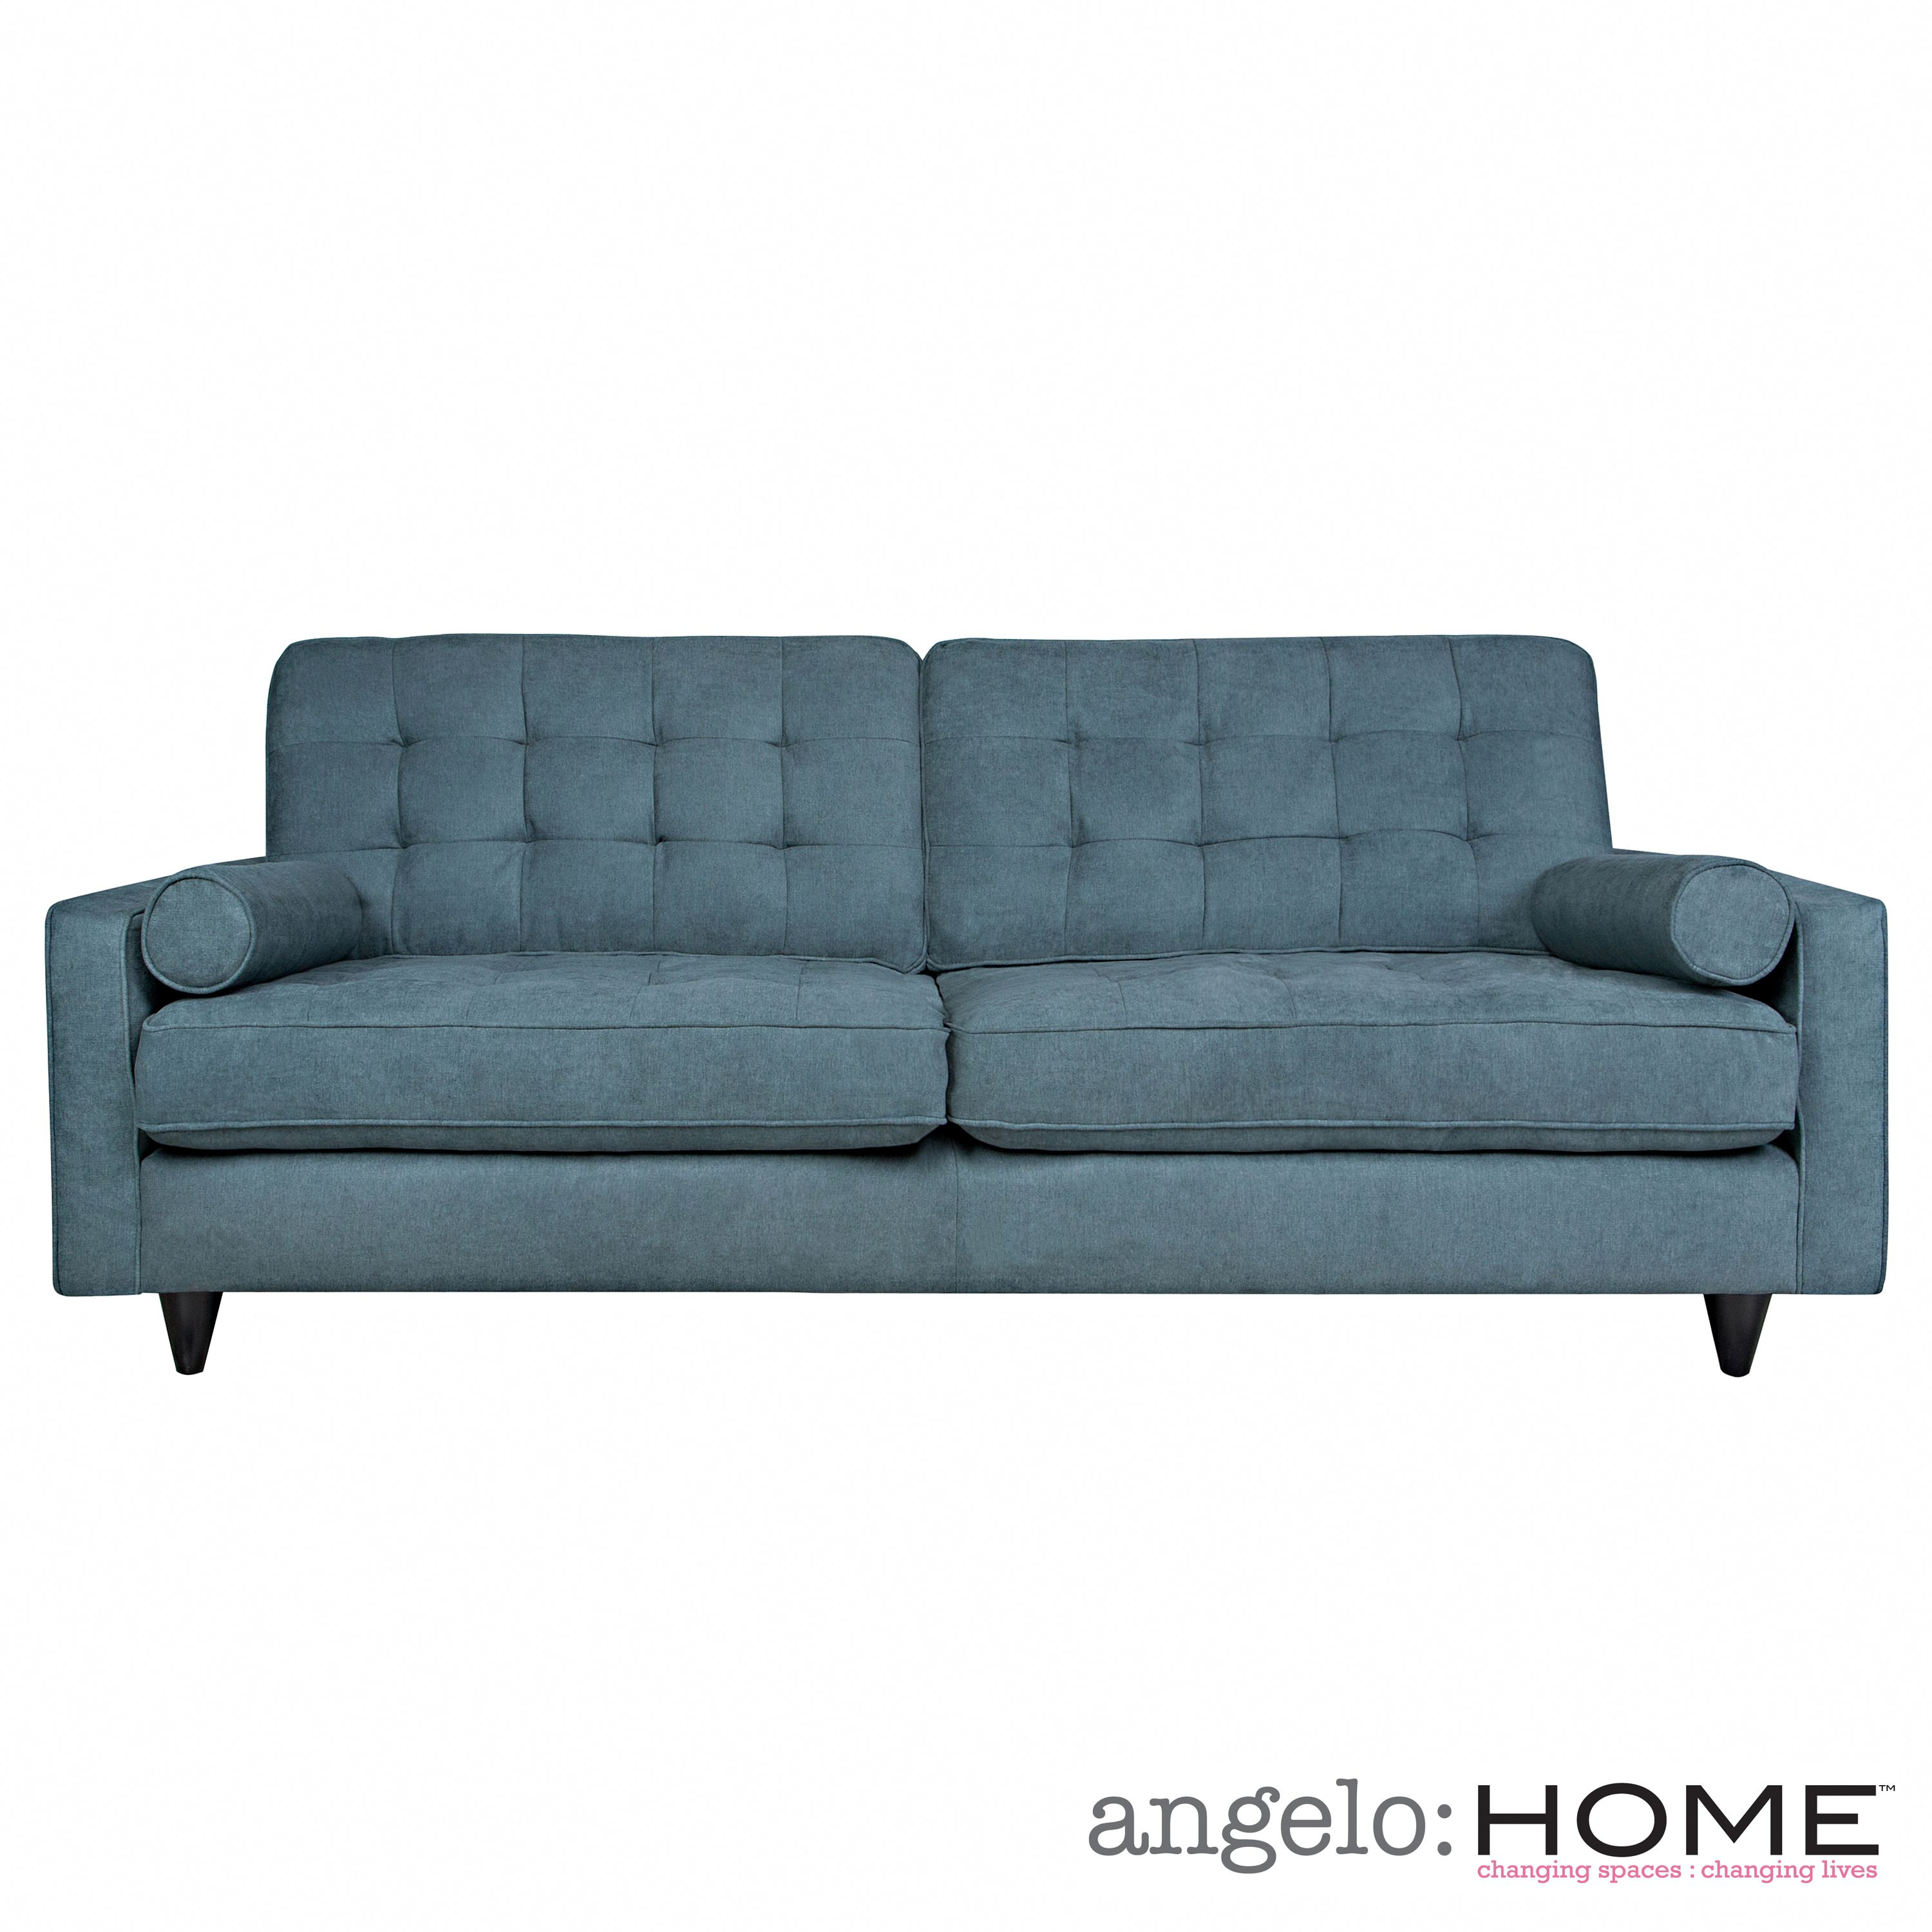 The Angelo Home Laura Sofa Was Designed By Surmelis Features A On Tufted Back And Rolled Arm Bolster Pillows